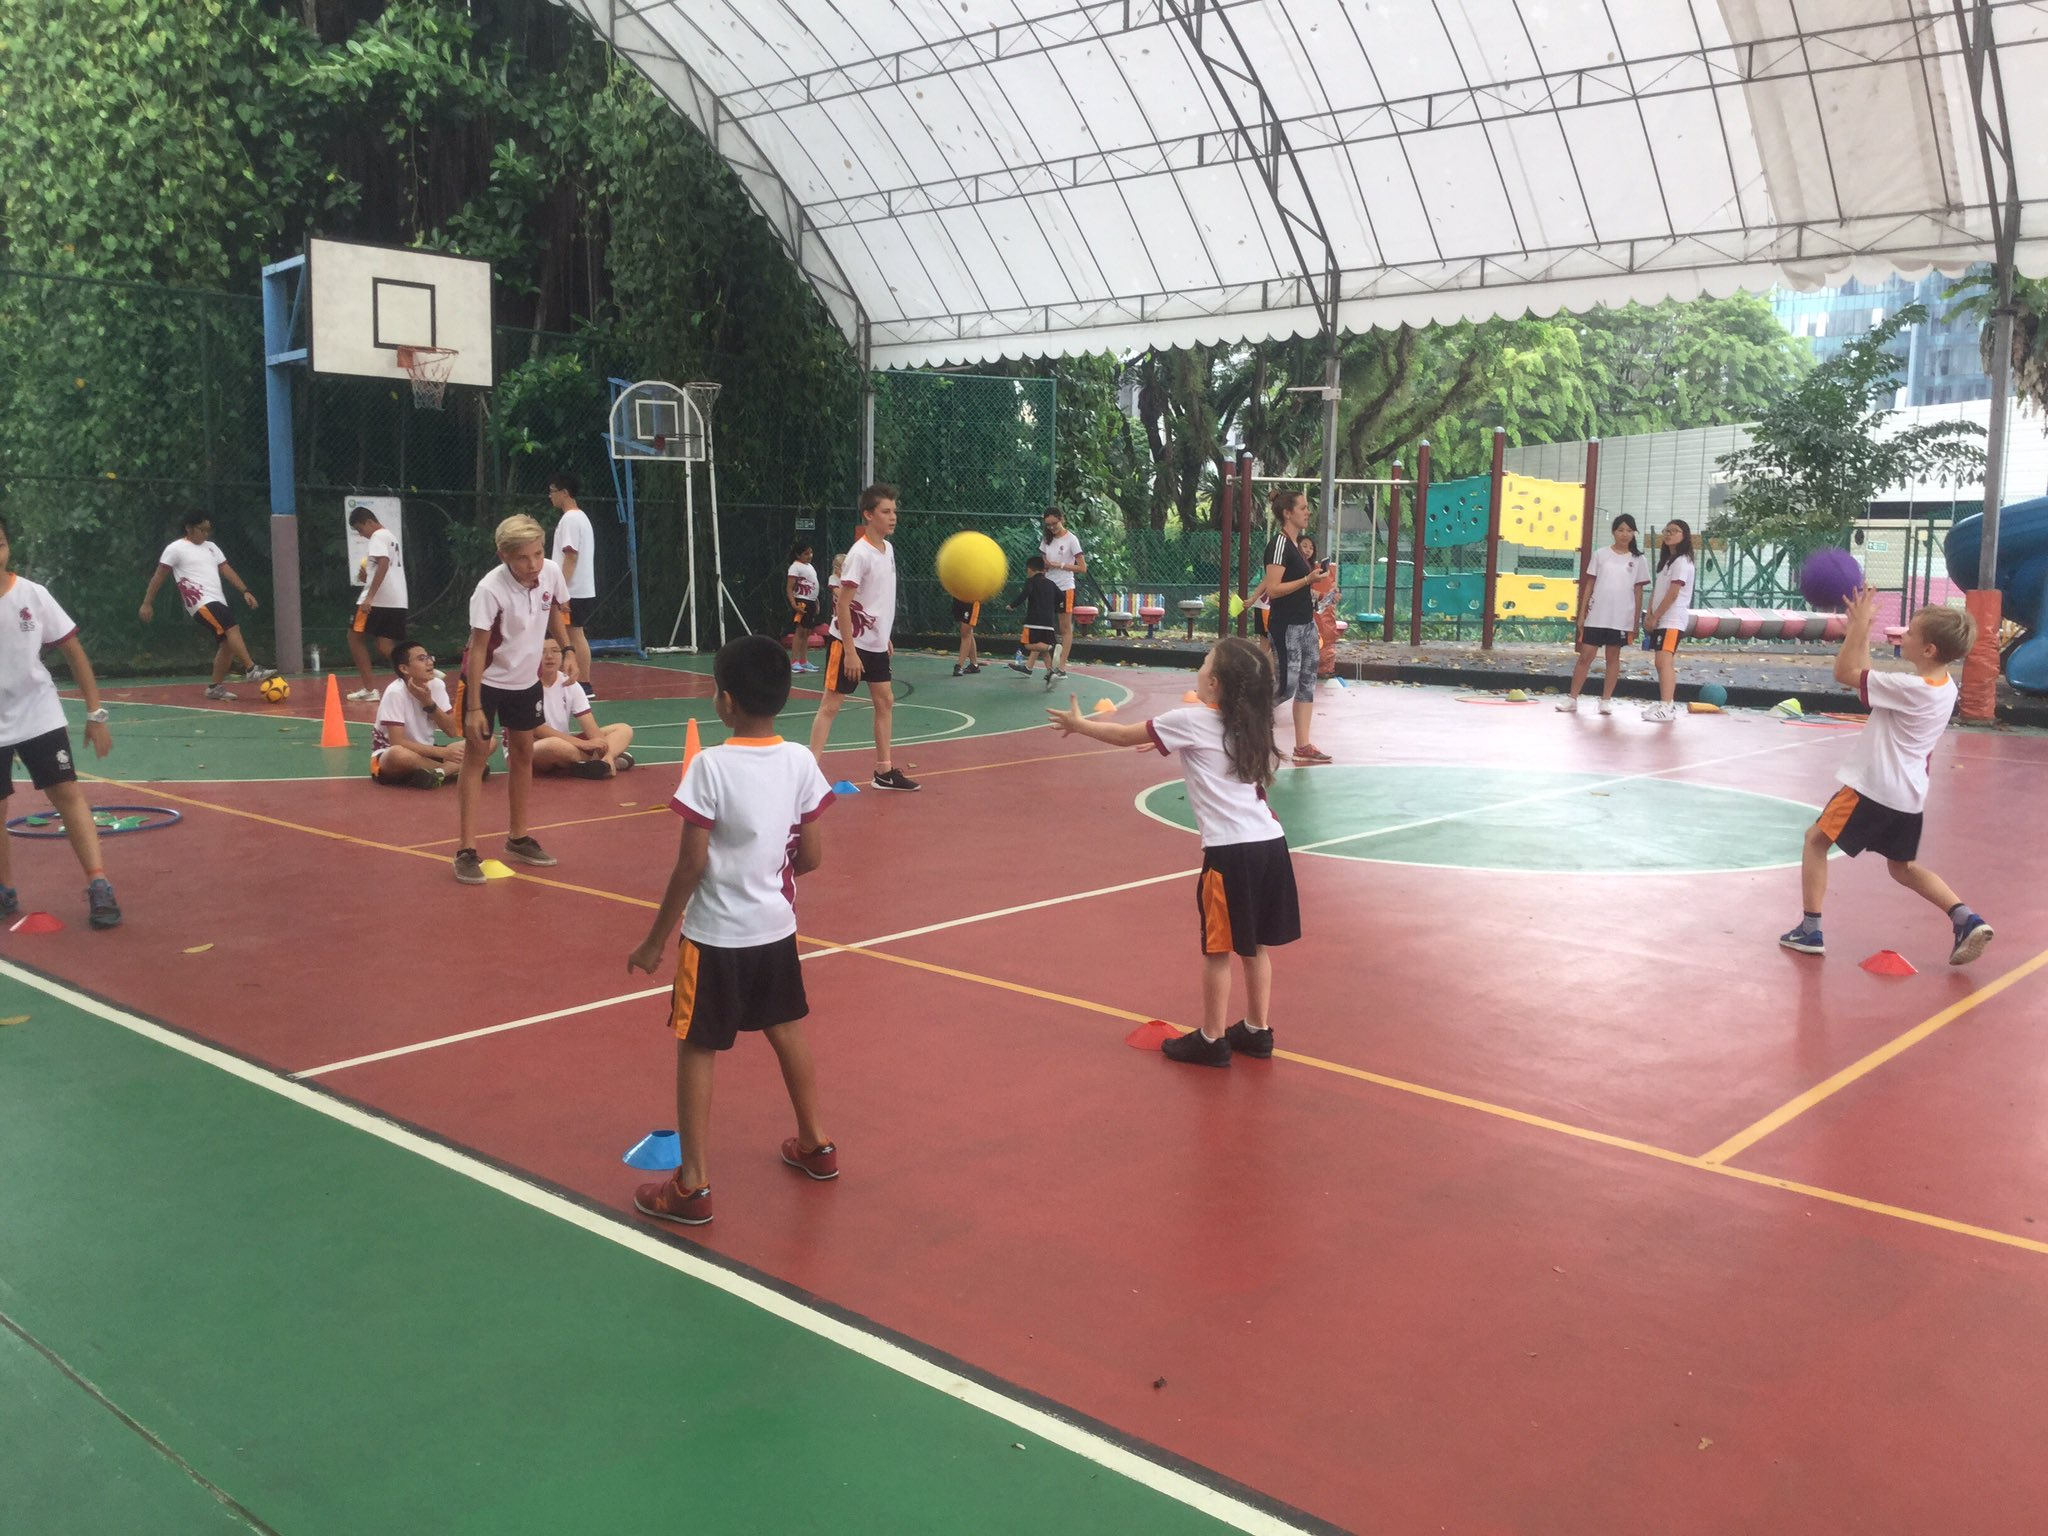 Grade 8 teaching throwing and catching to Grade 1 #isspride https://t.co/XuhgsBW3pz